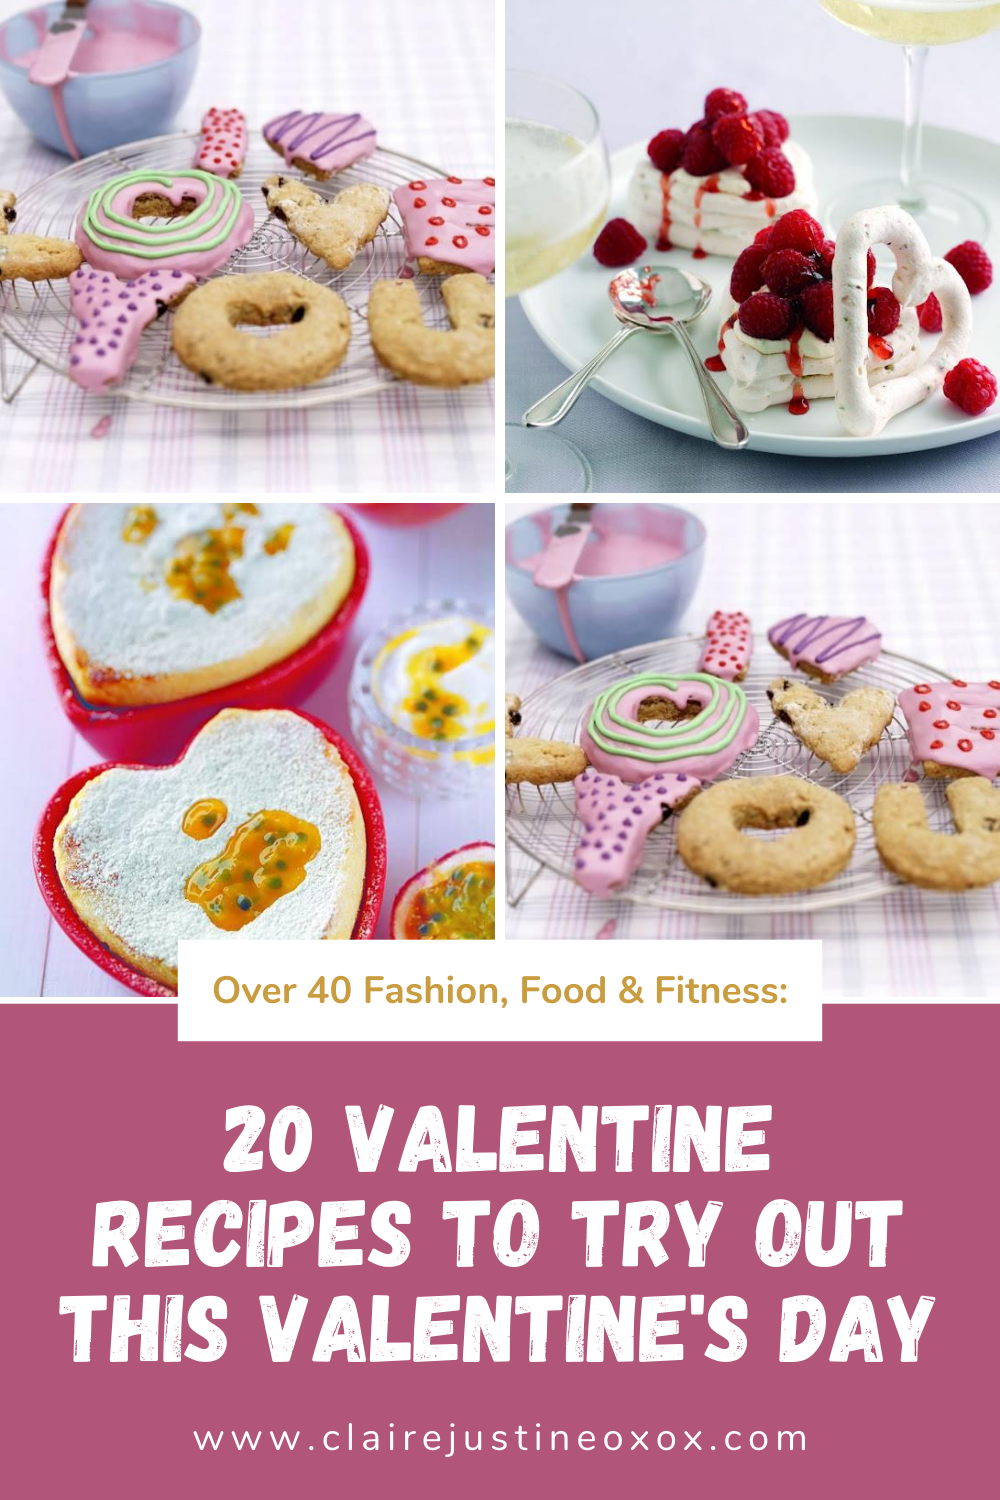 20 Valentine Recipes To Try Out This Valentine's Day